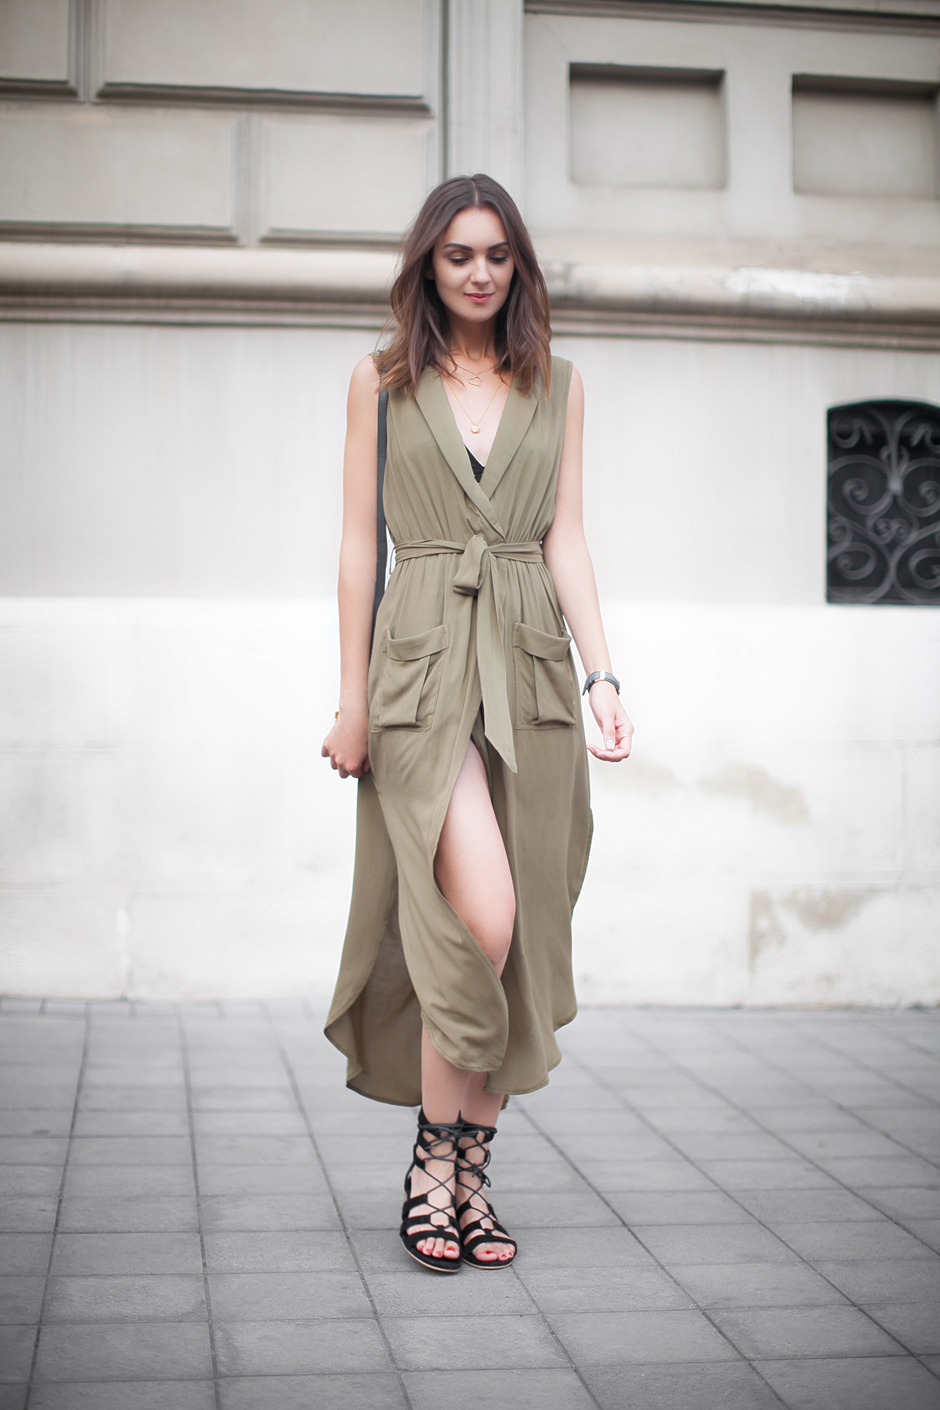 army-green-maxin-dress-black-gladiators-outfit-street-style